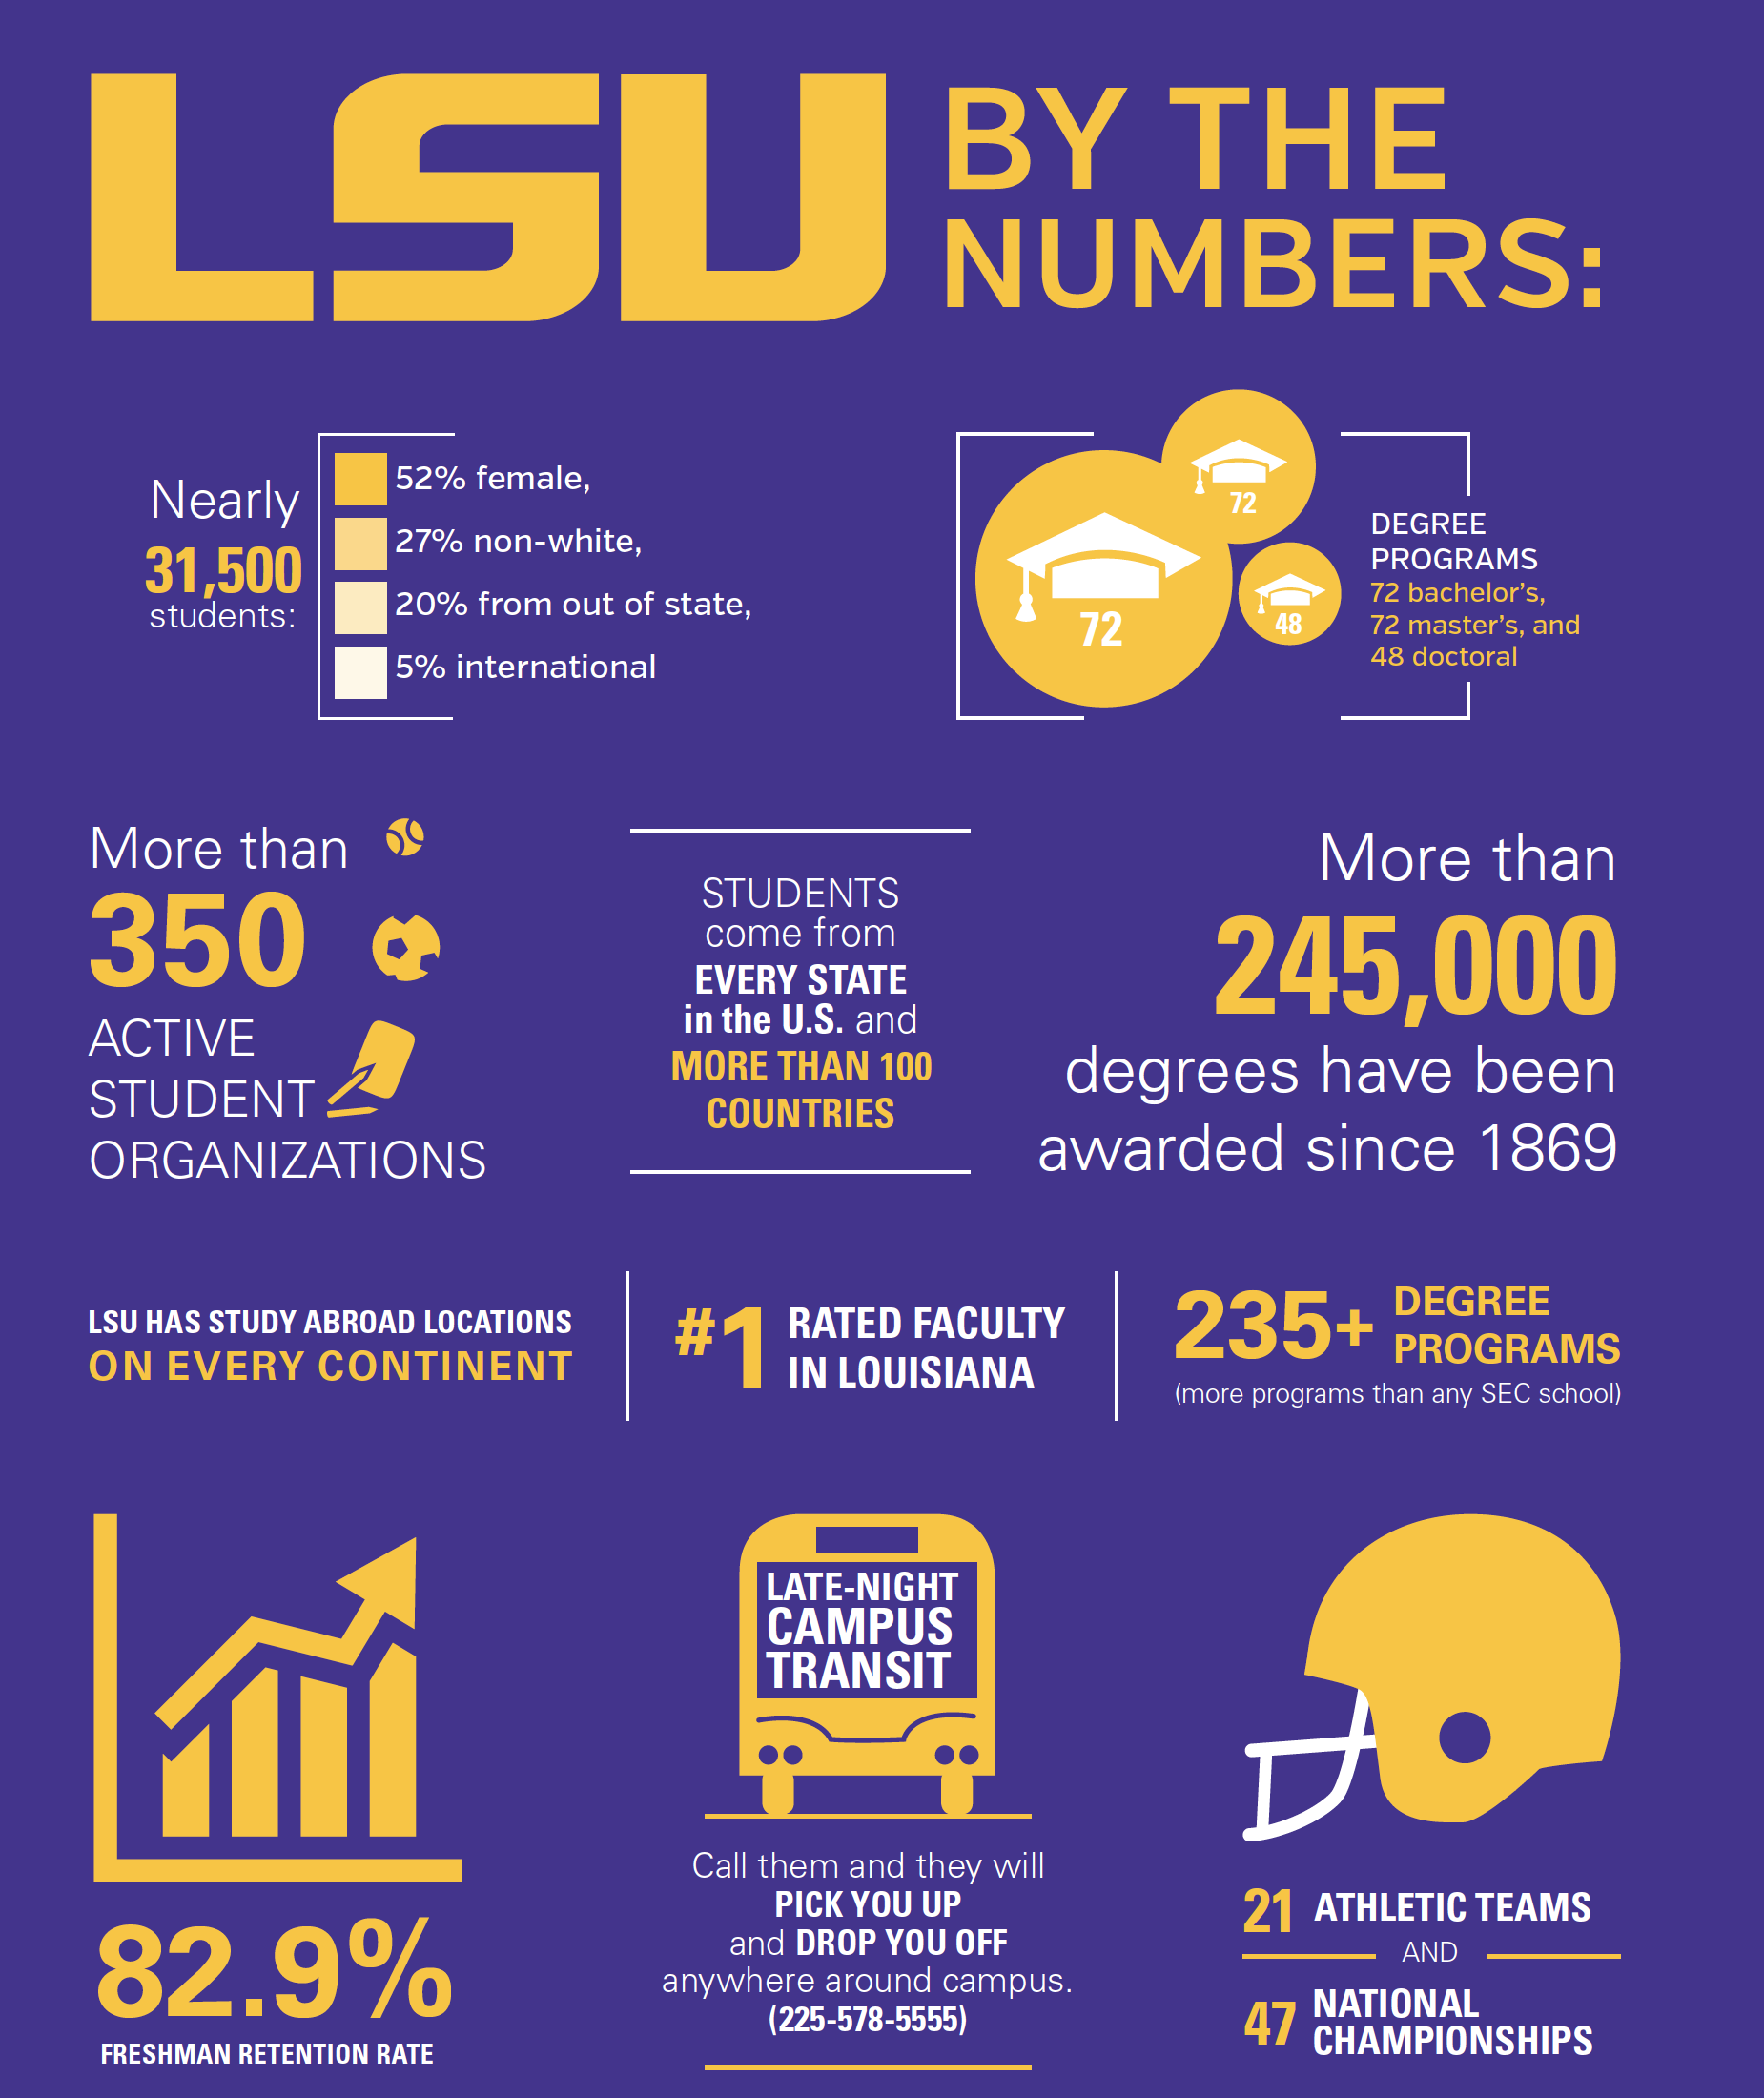 b8352273c LSU By the Numbers infographic